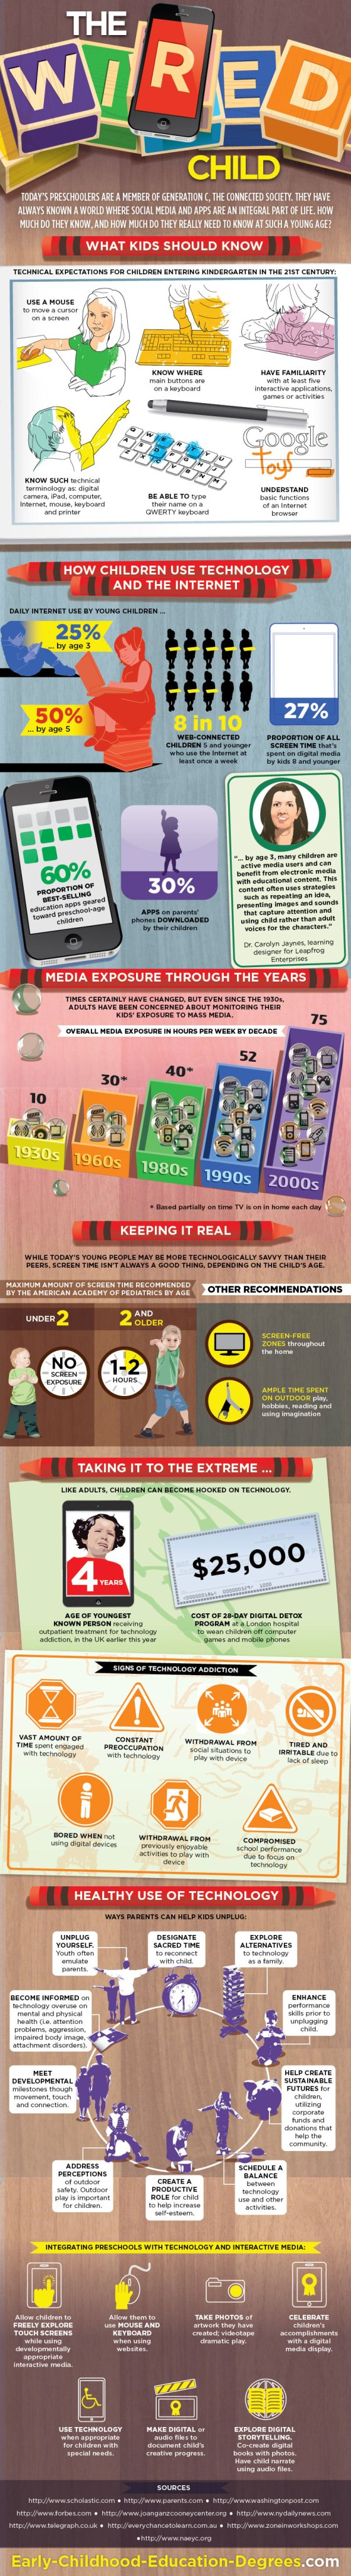 Infographic : Wired Child